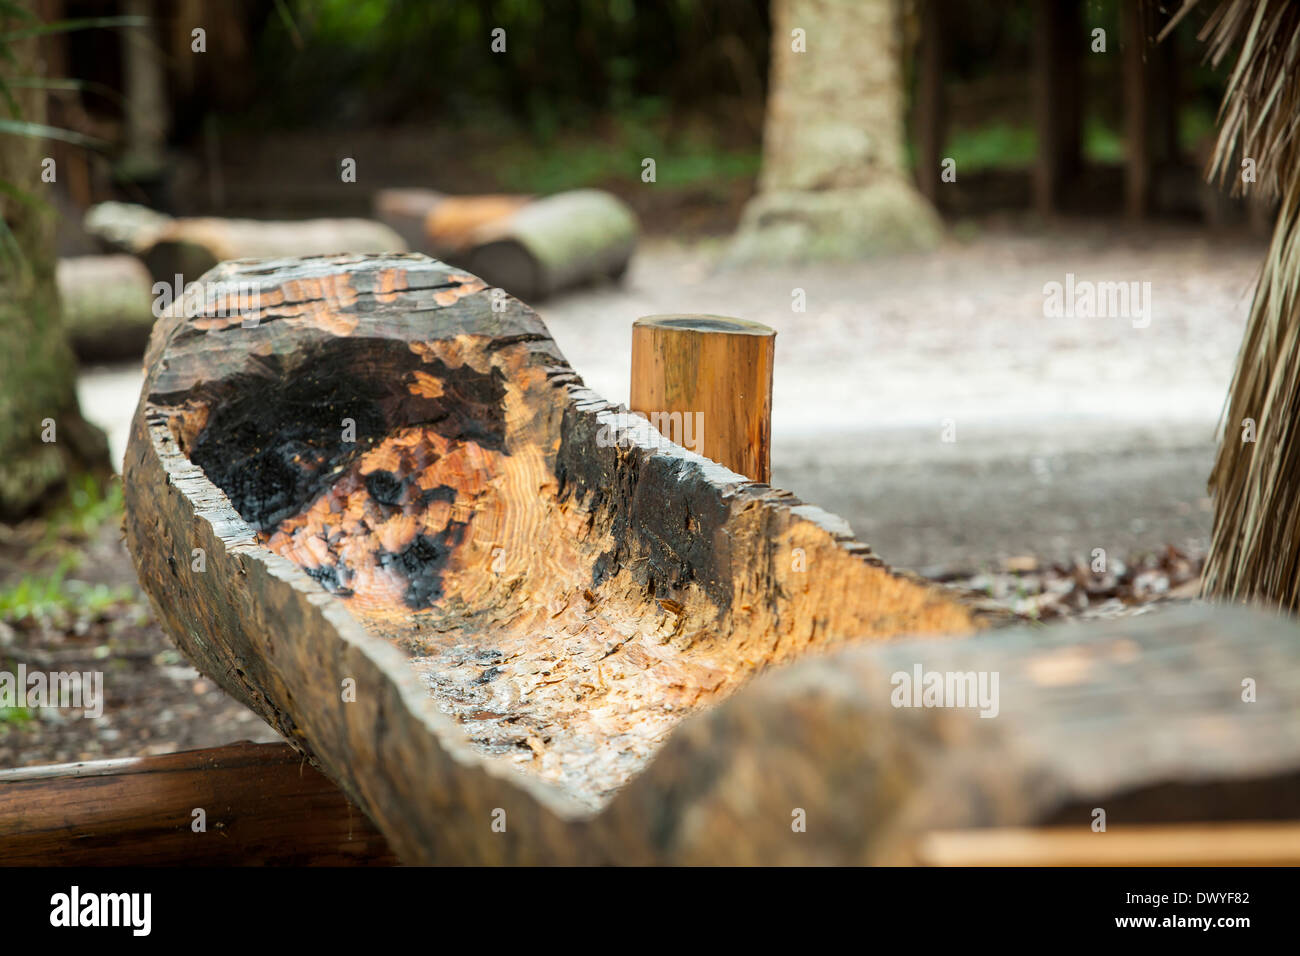 A replica of a Timucua canoe is pictured in St. Augustine Fountain of Youth Archaeological Park, Florida - Stock Image